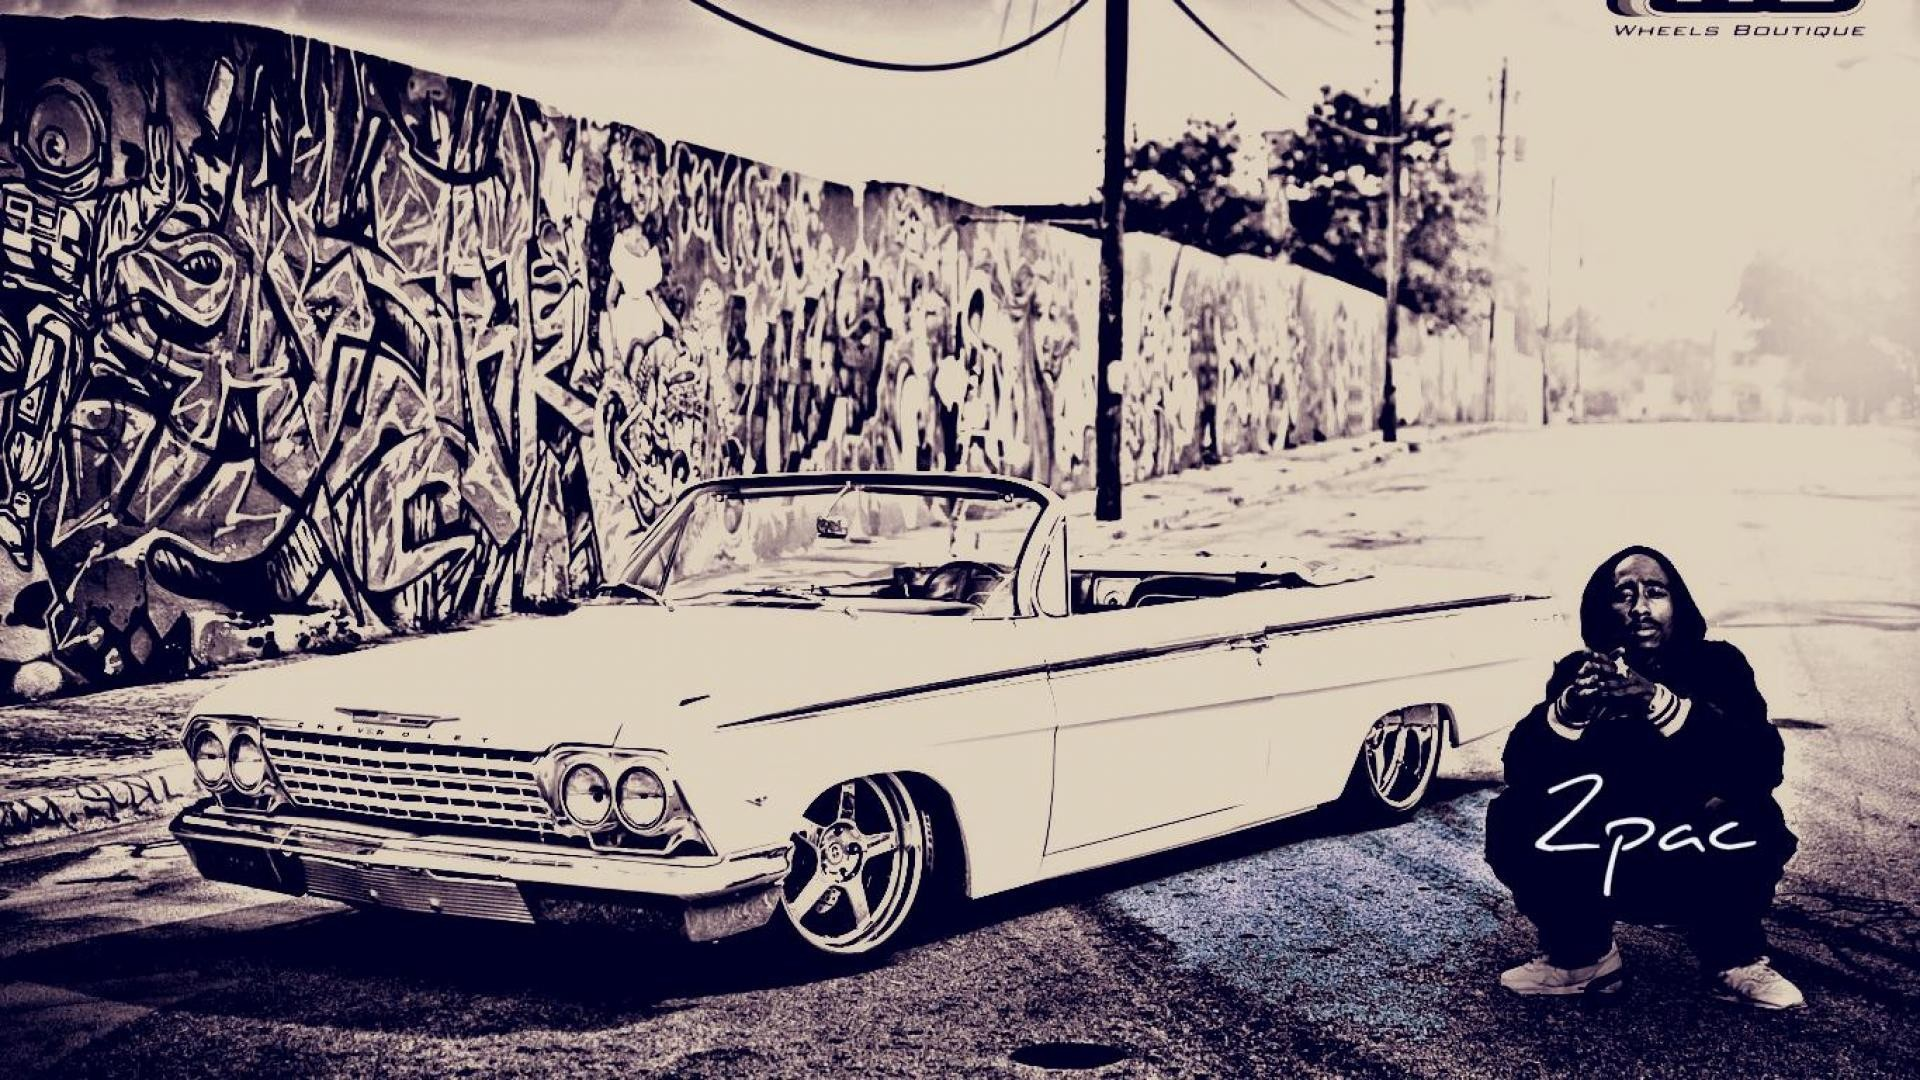 Lowrider background for your phone (iPhone & android), computer or .